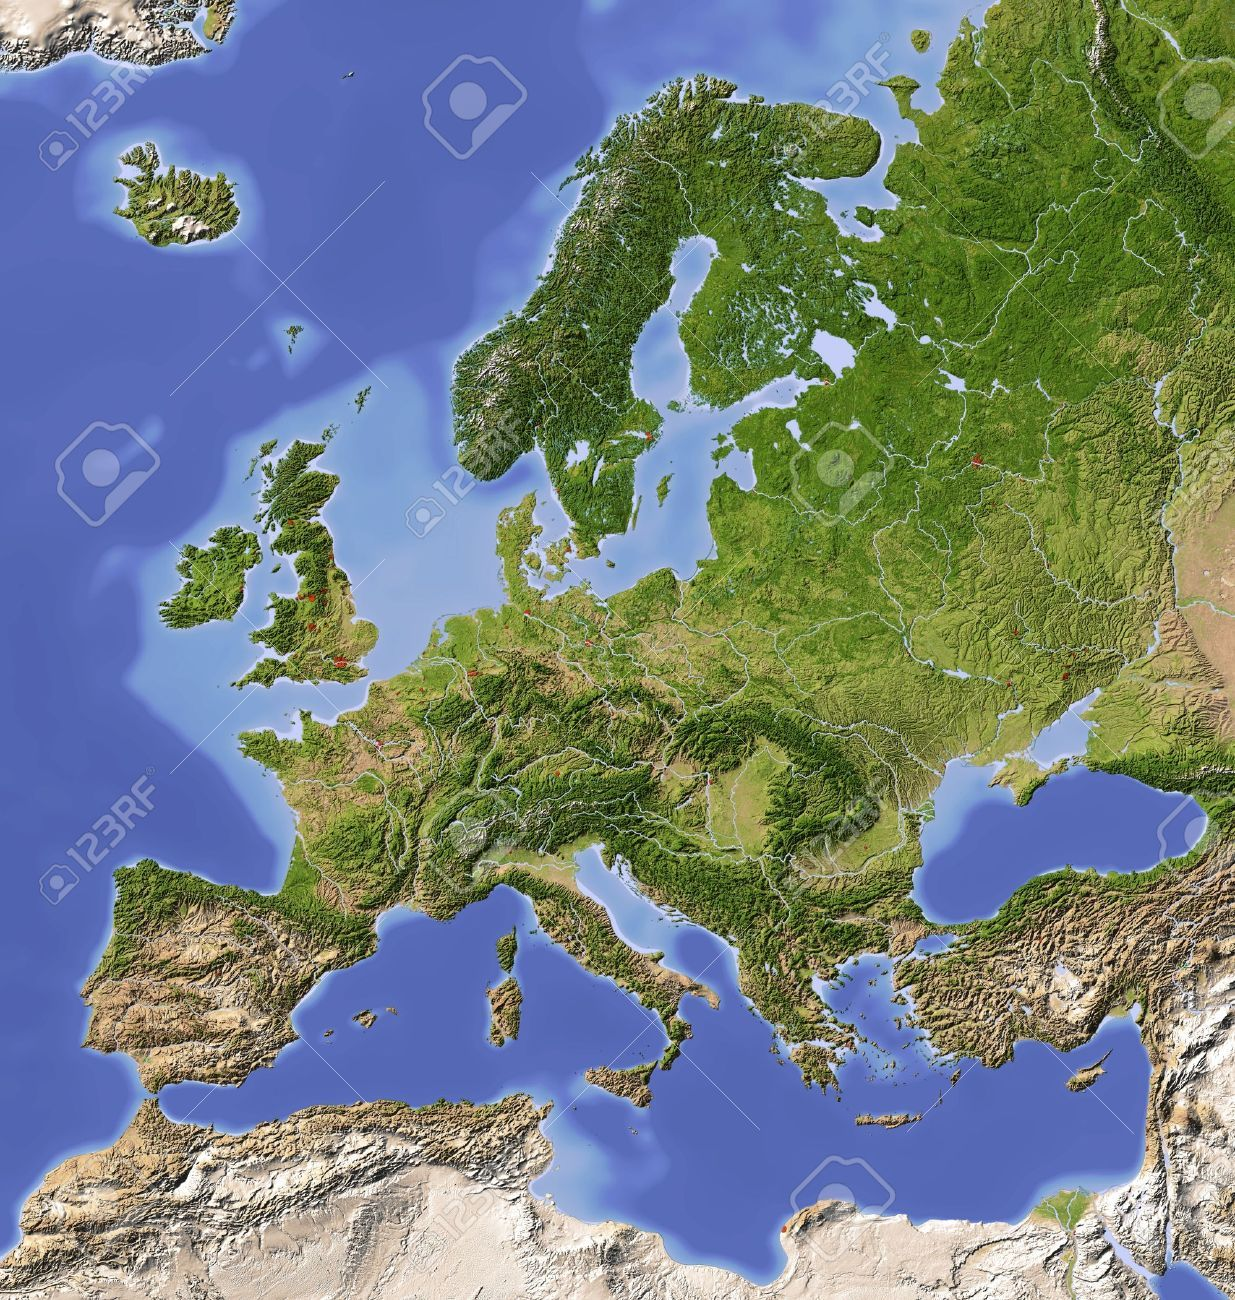 Europe Shaded Relief Map With Major Urban Areas Colored According Relief Map Terrain Map Europe Map